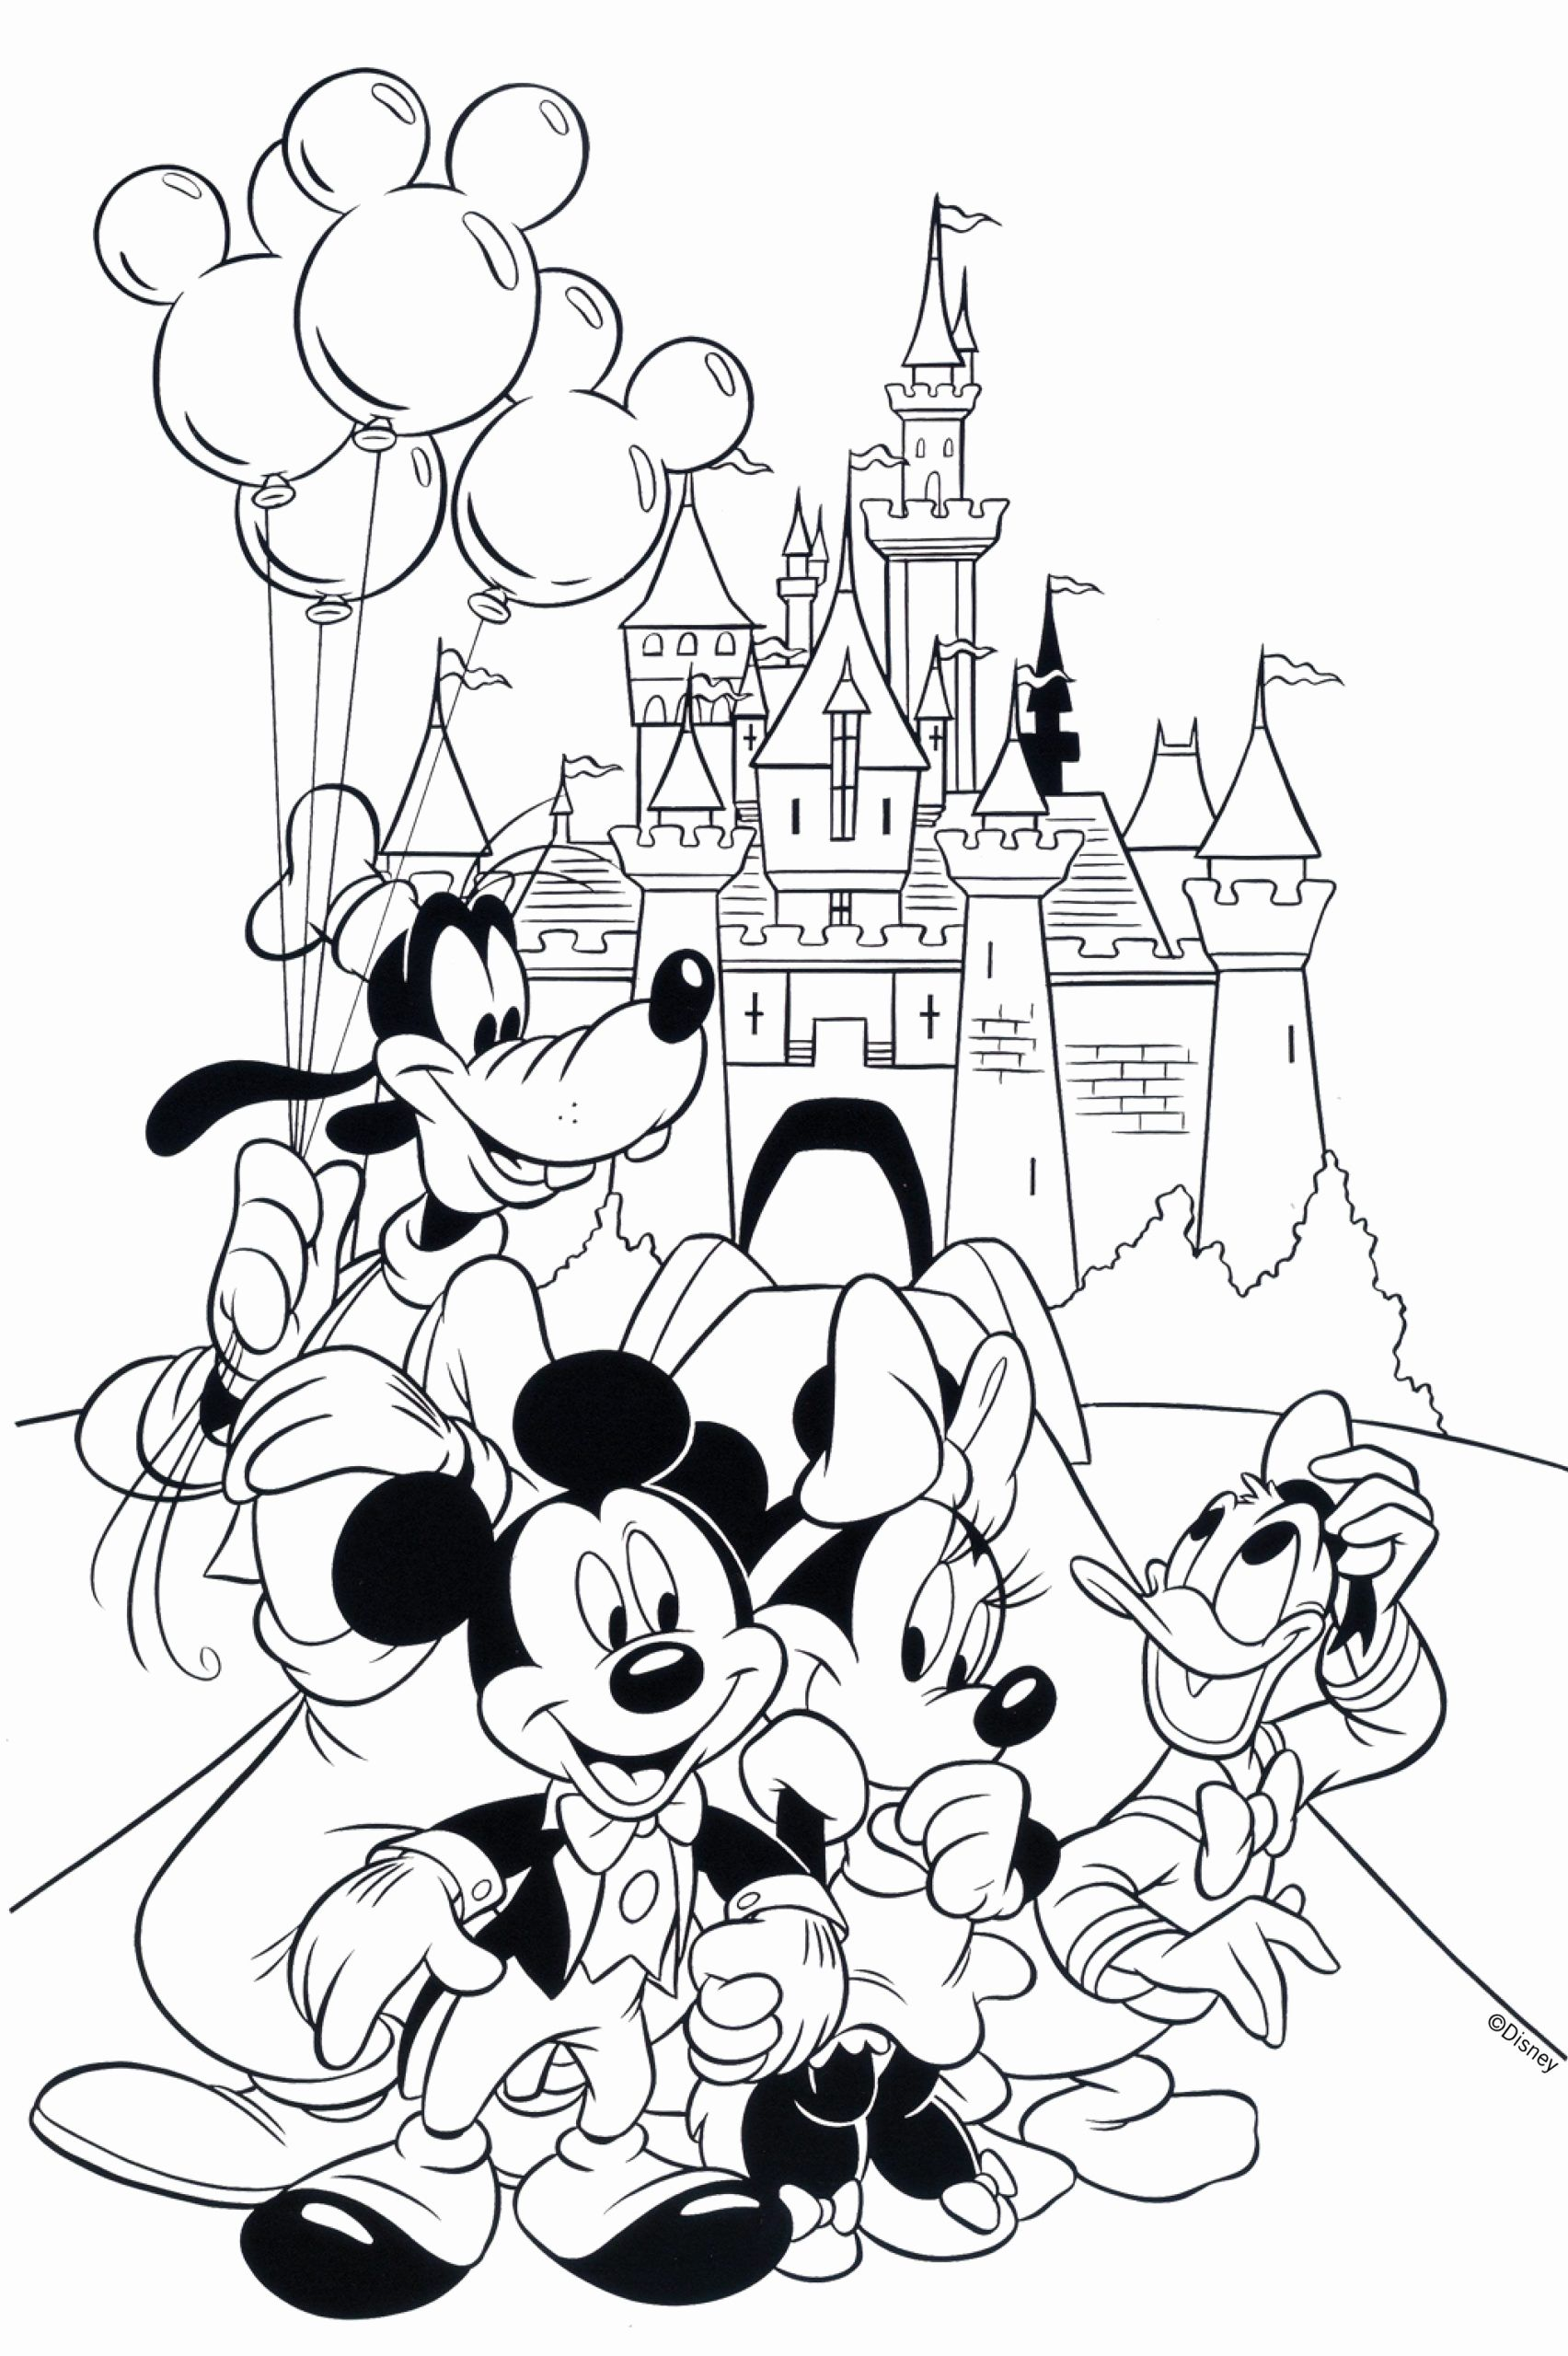 Best Coloring Pages for Kids Disney  Disney coloring pages